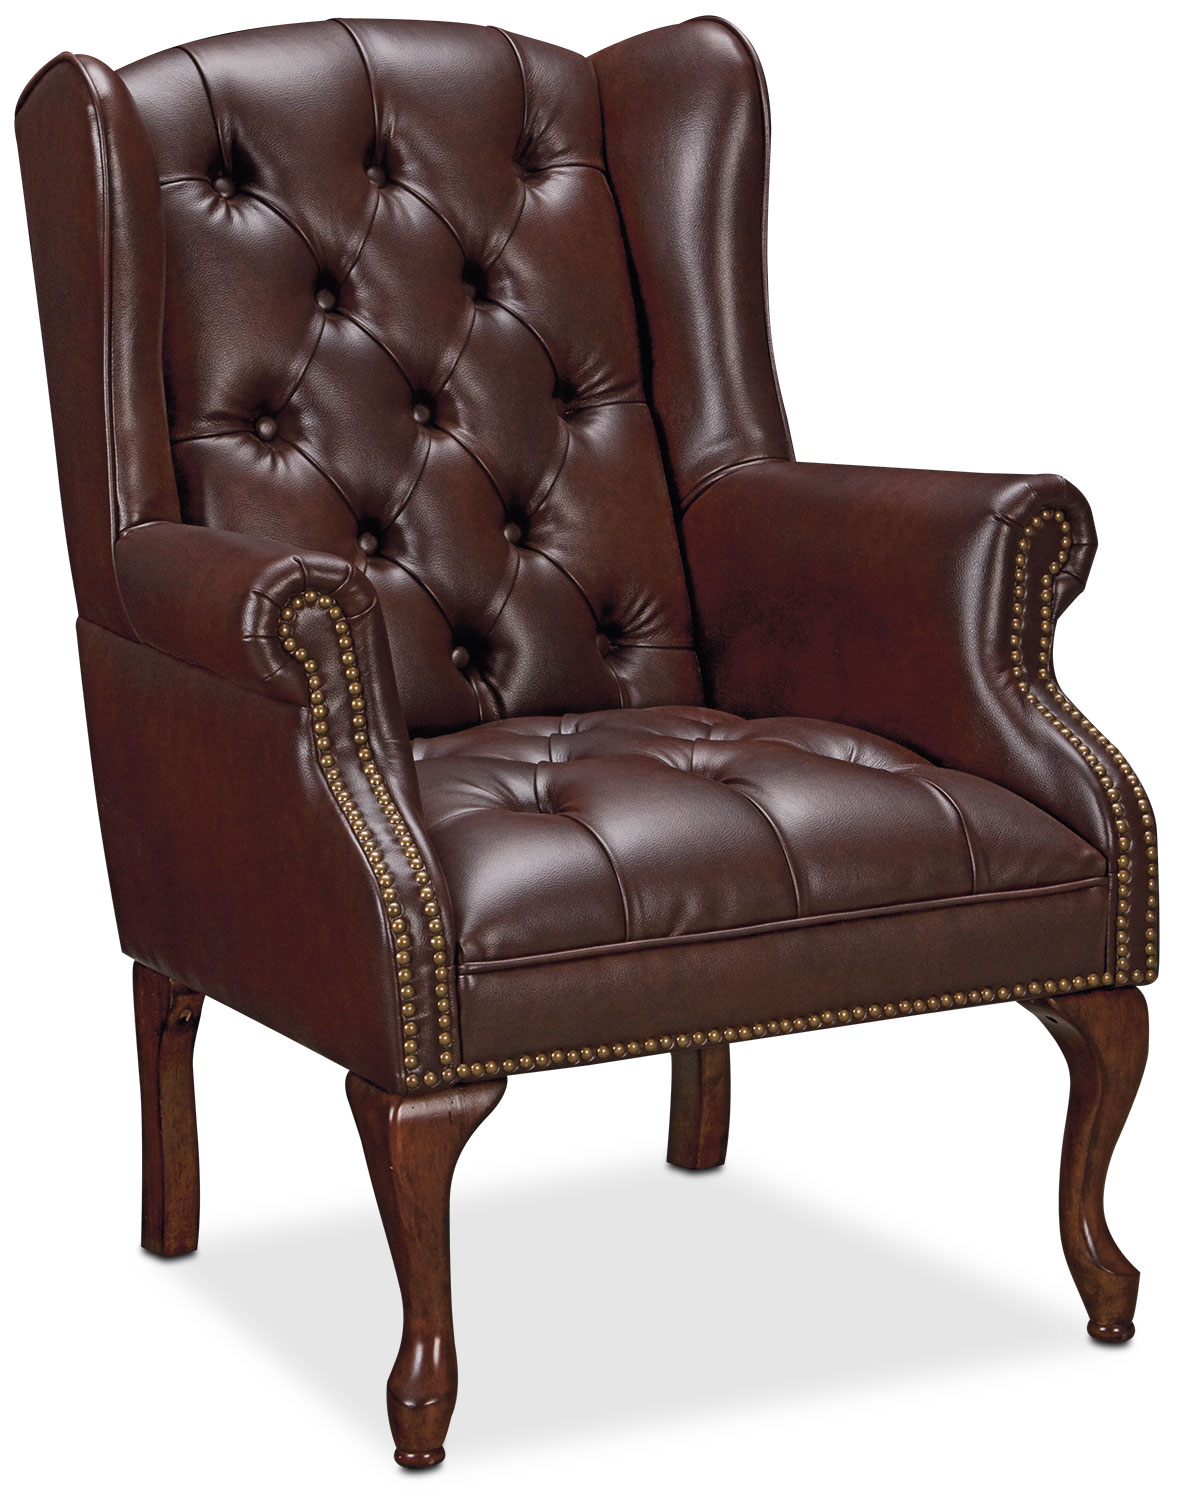 Living Room Furniture - Wyndham Tufted Button Accent Chair - Brown